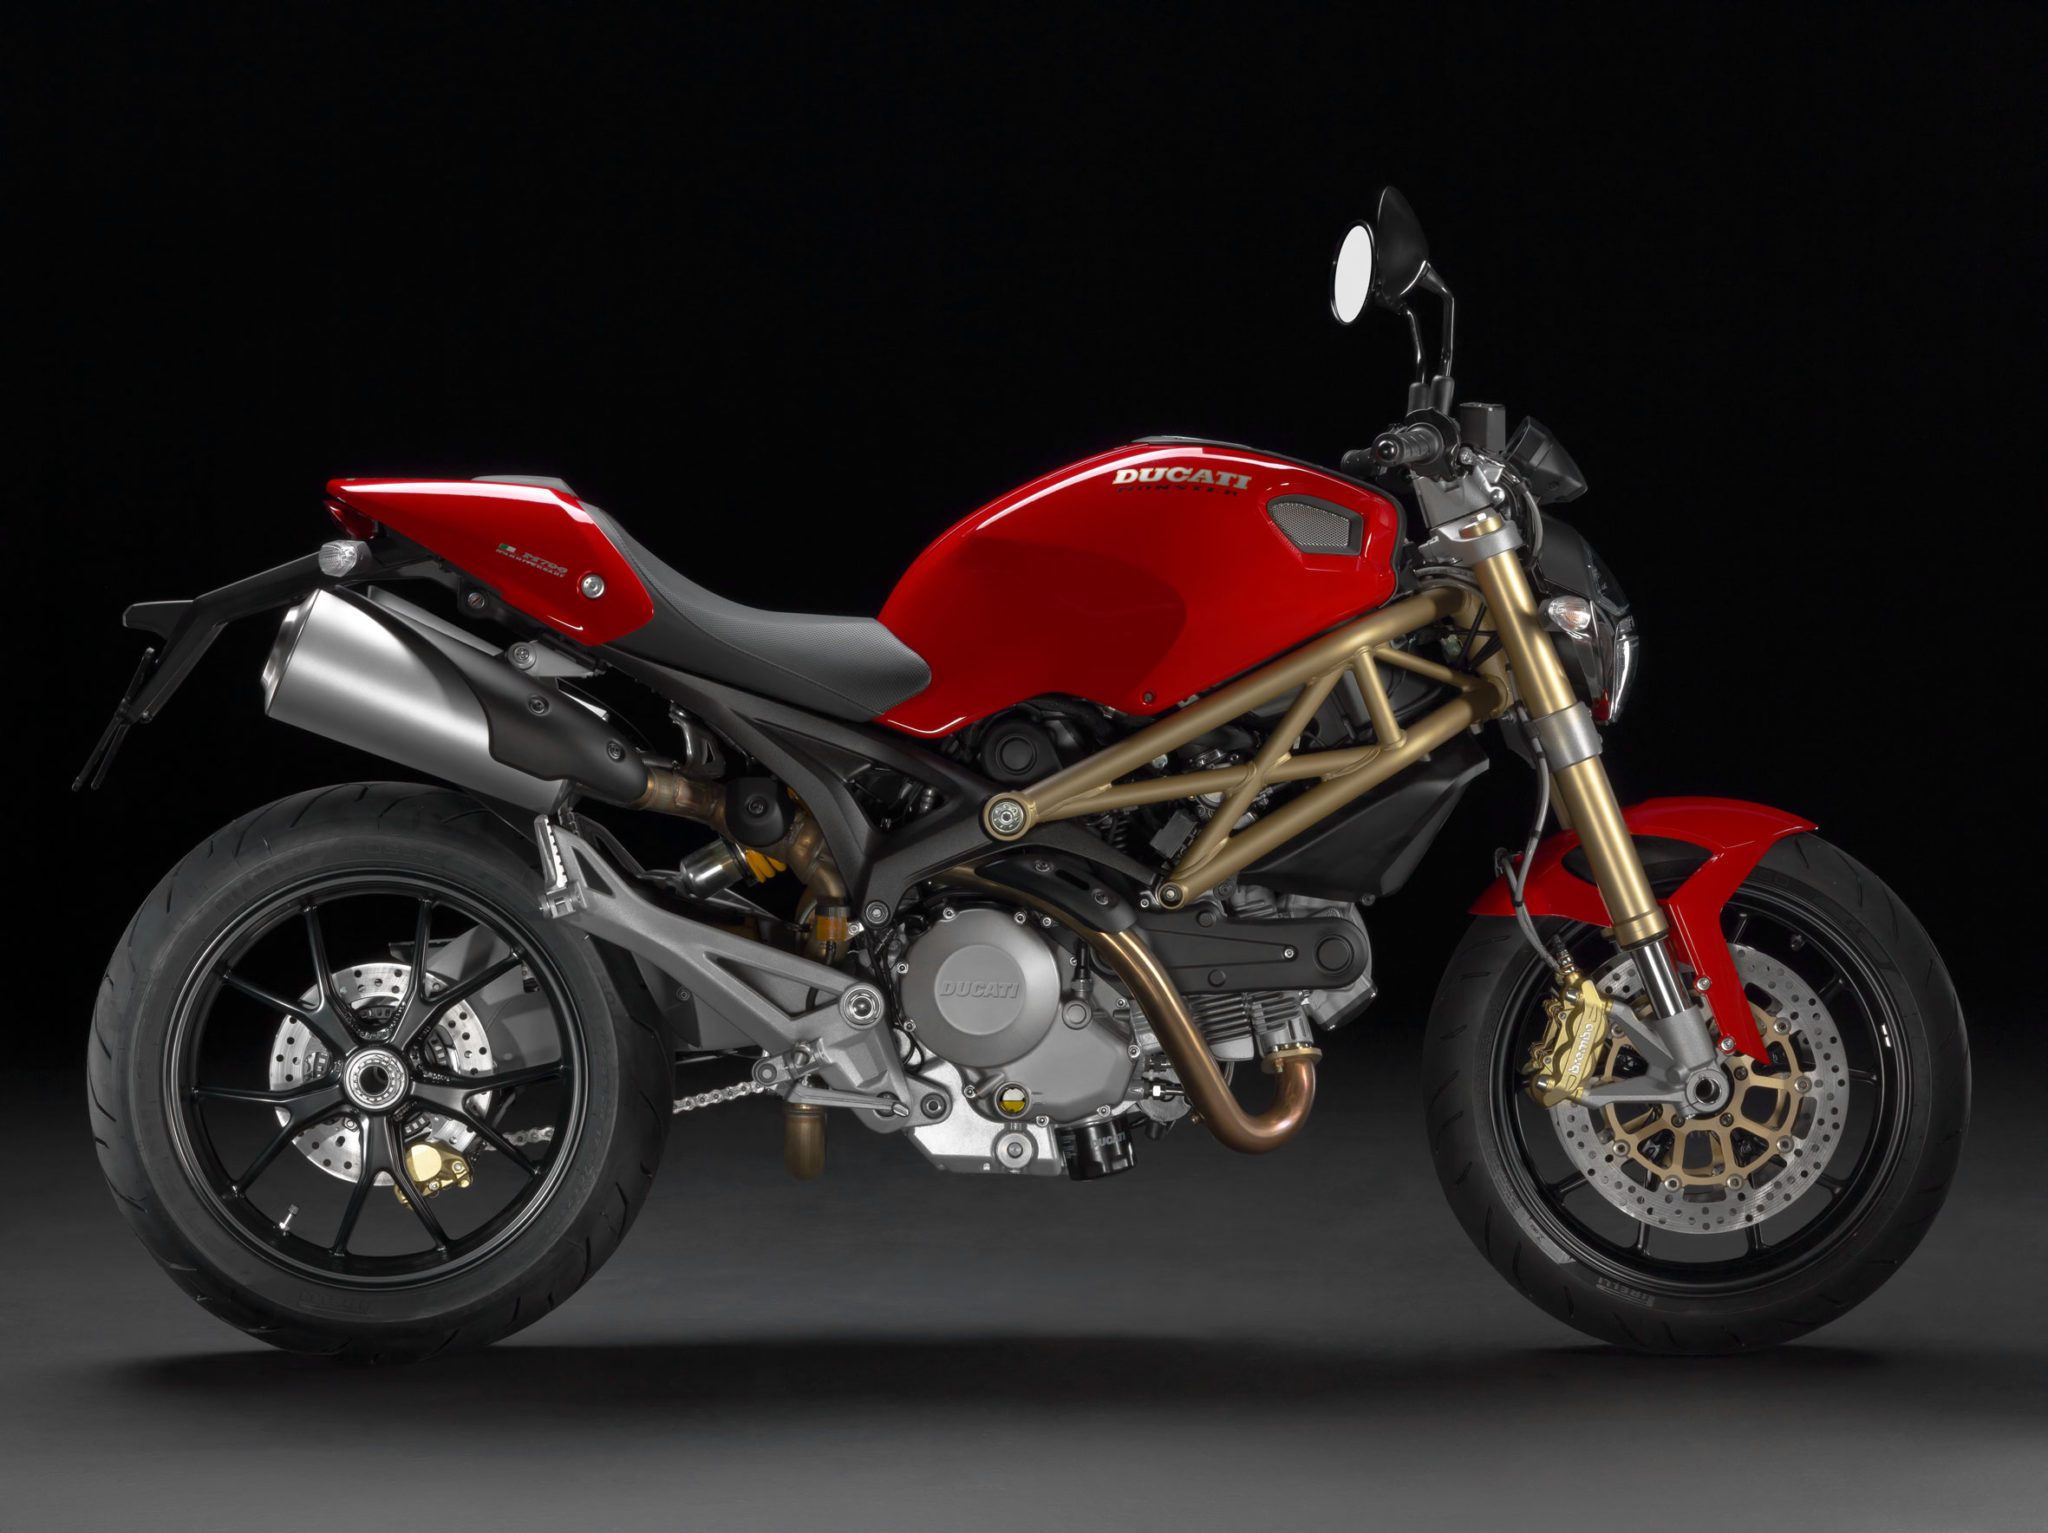 Lotti – Ducati Monster 696